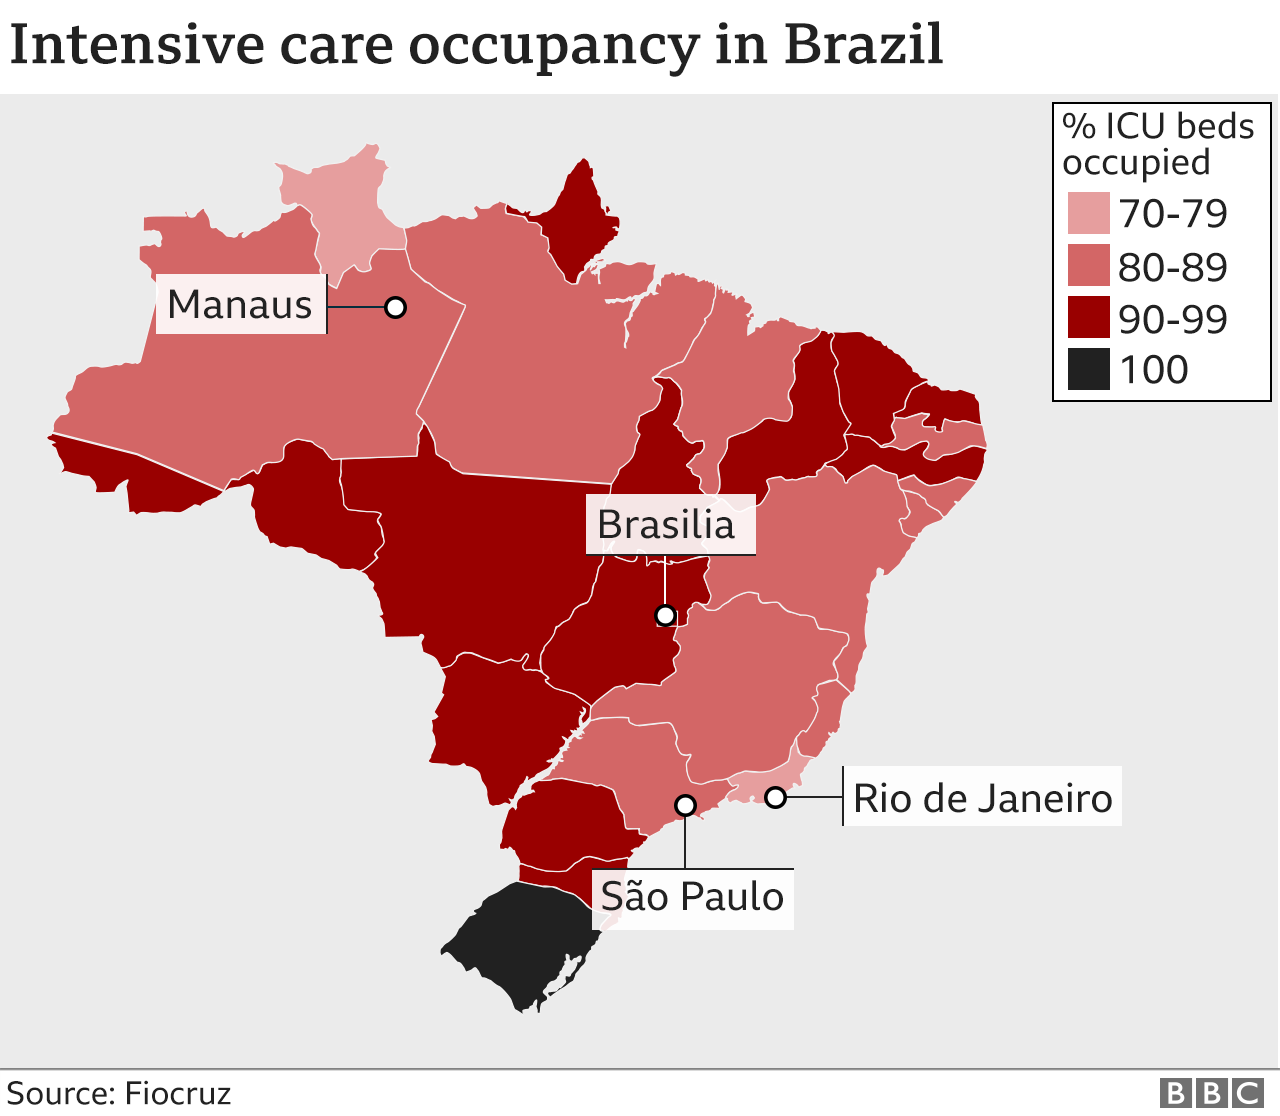 Map showing ICU occupancy across Brazil